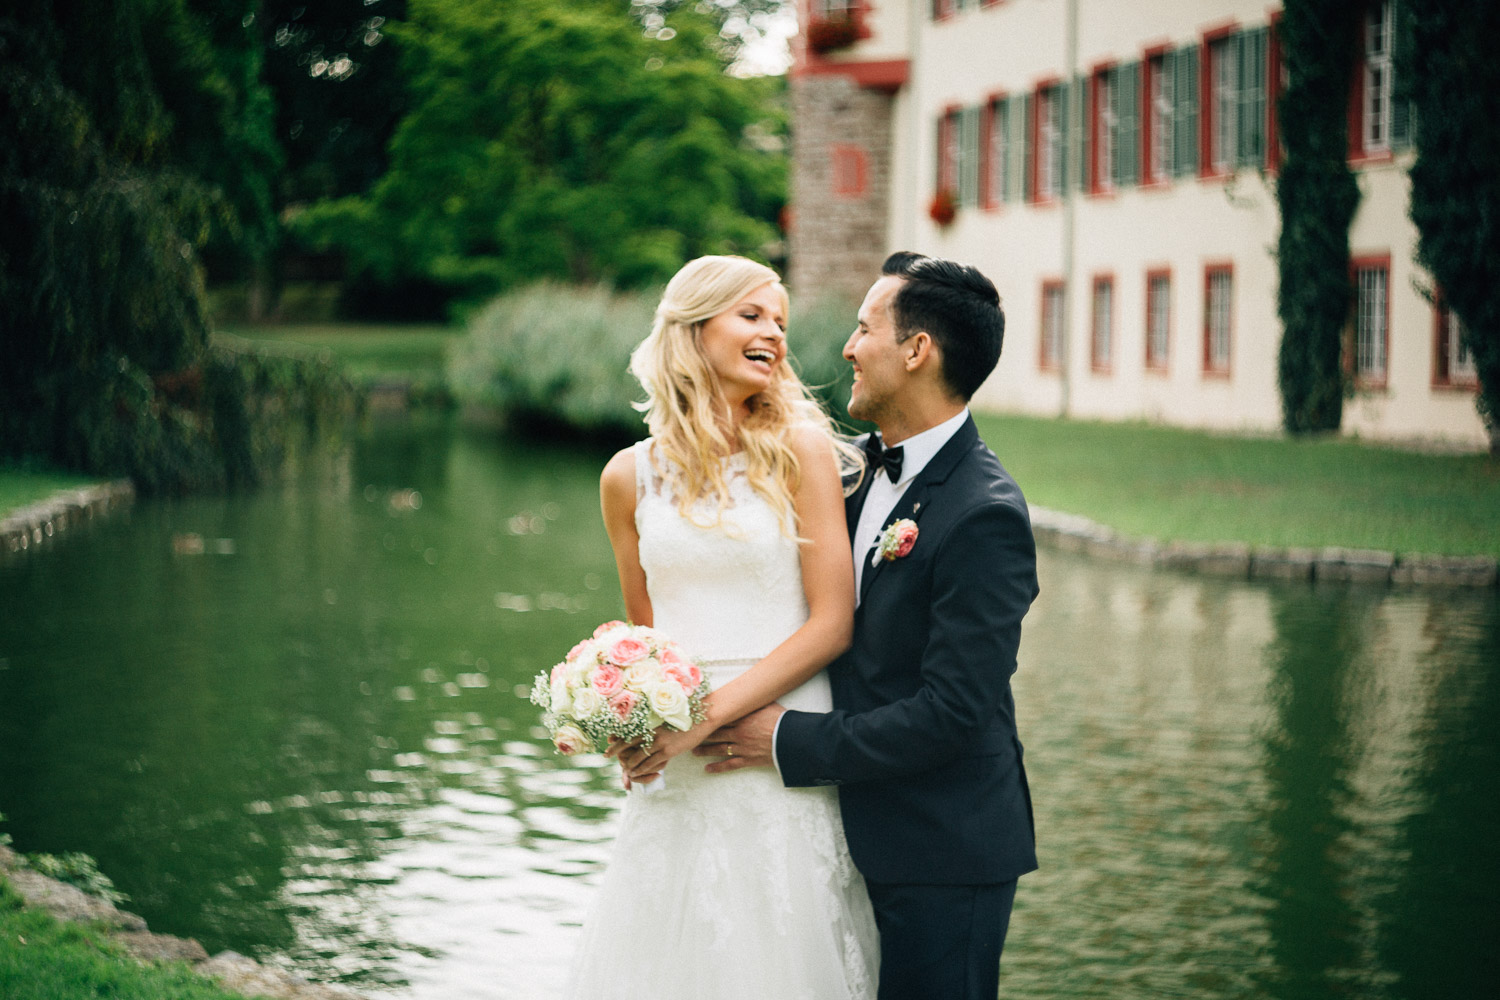 Wedding photographer Munich - True Love Photography